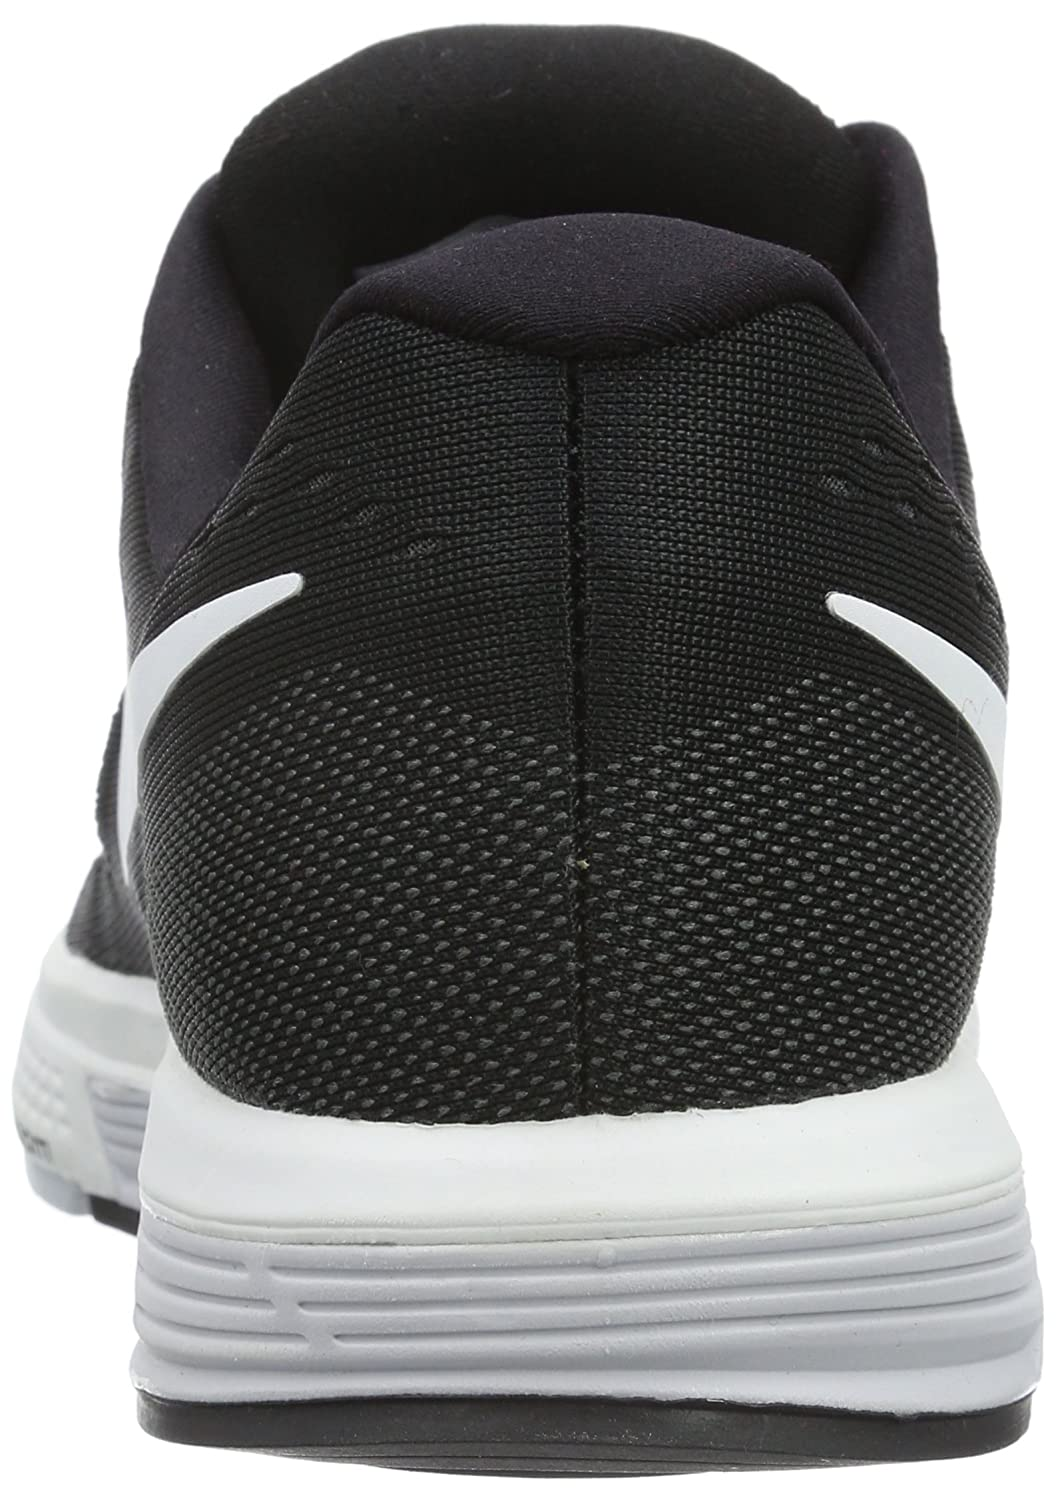 Nike Men's Air Shoes Zoom Vomero 11 Running Shoes Air B01B4FM3JK 7 D(M) US|Black/White/Anthracite d551ba